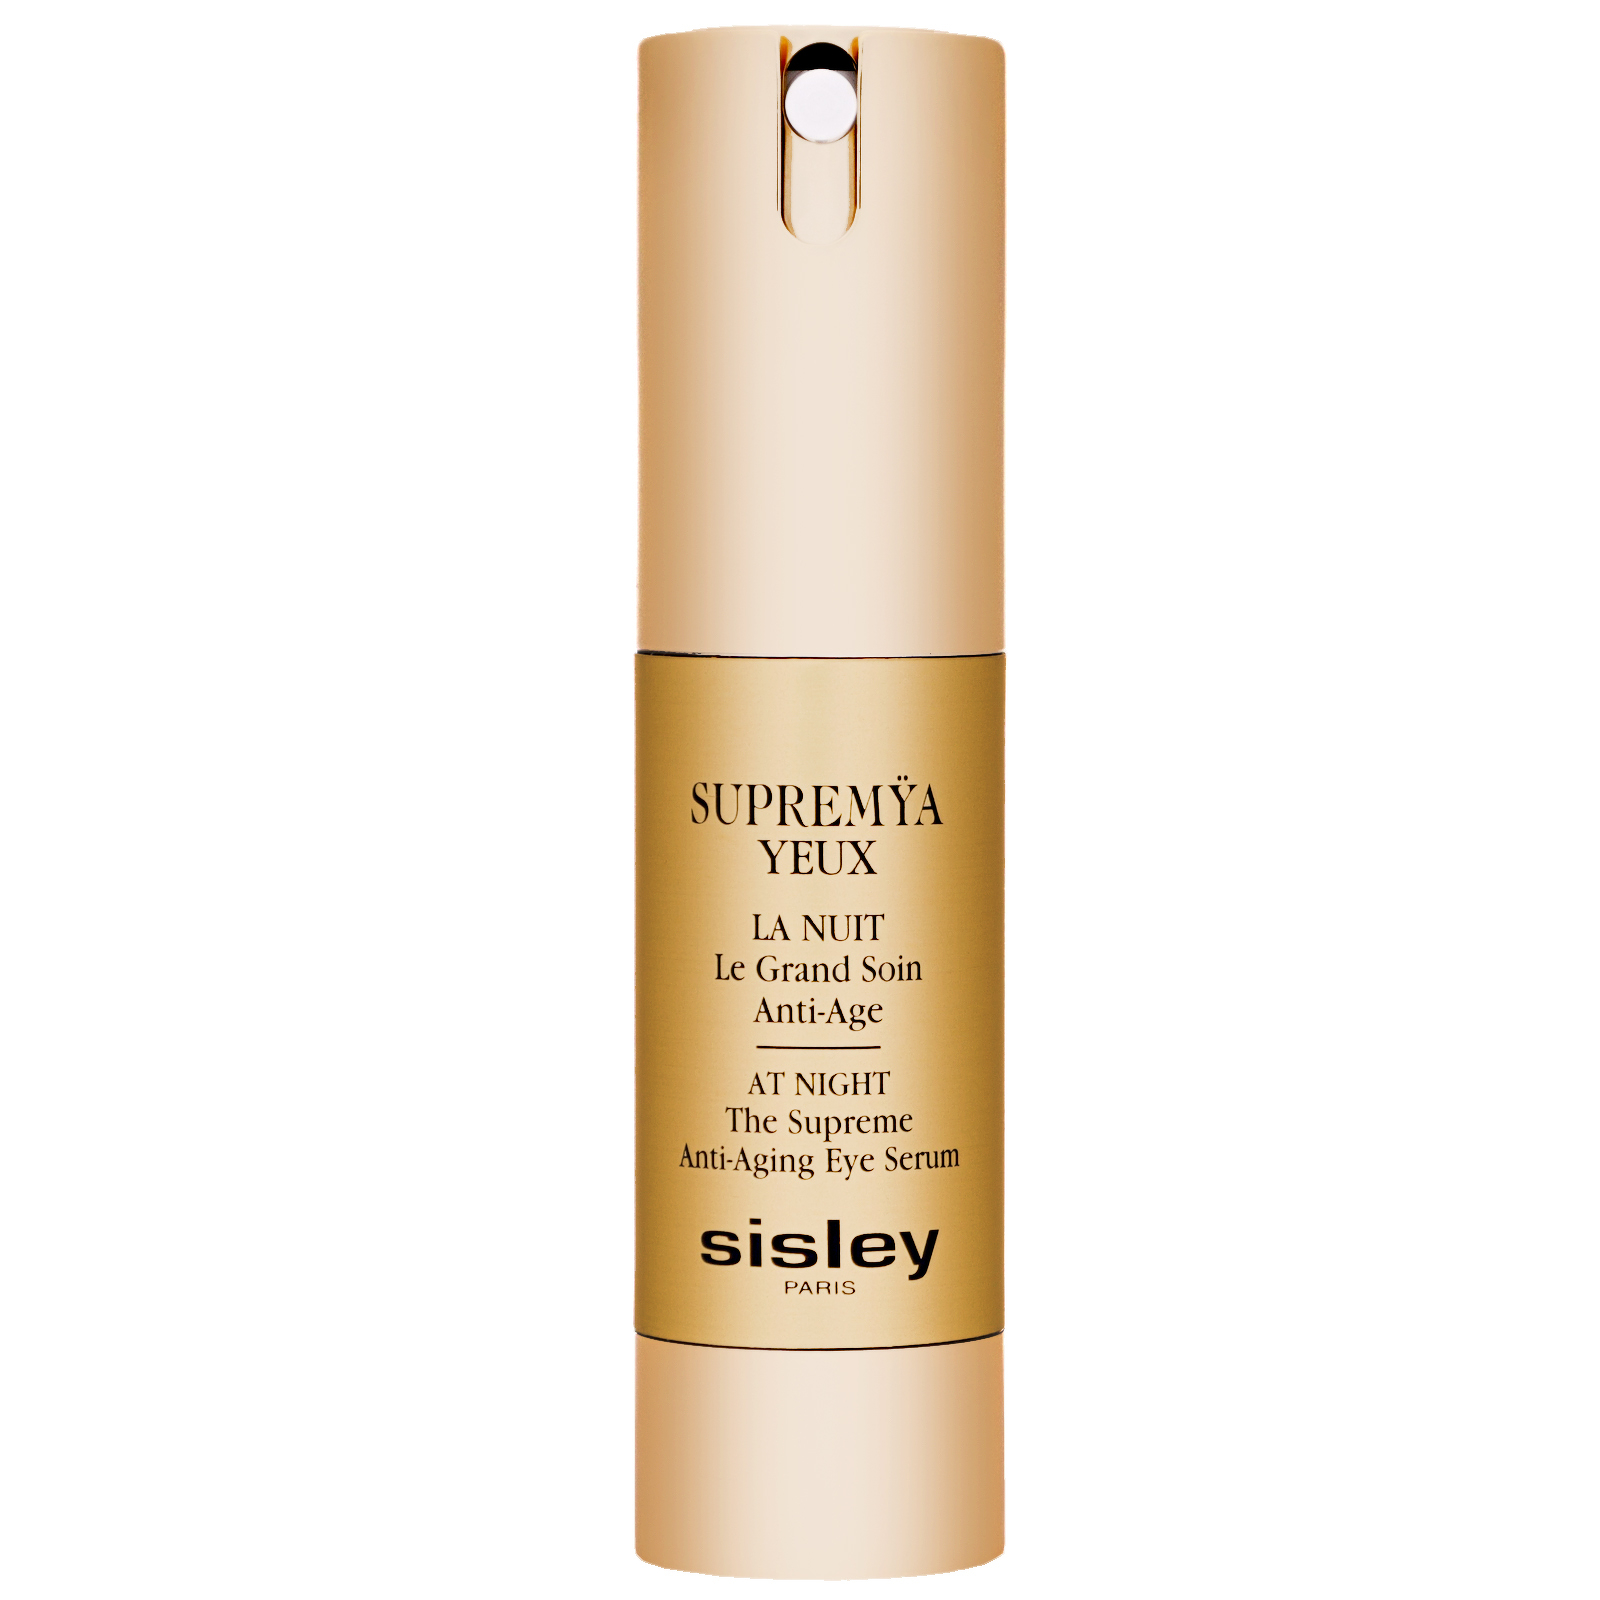 Sisley Eye & Lip Supremya Yeux At Night The Supreme Anti Aging Eye Serum 15ml